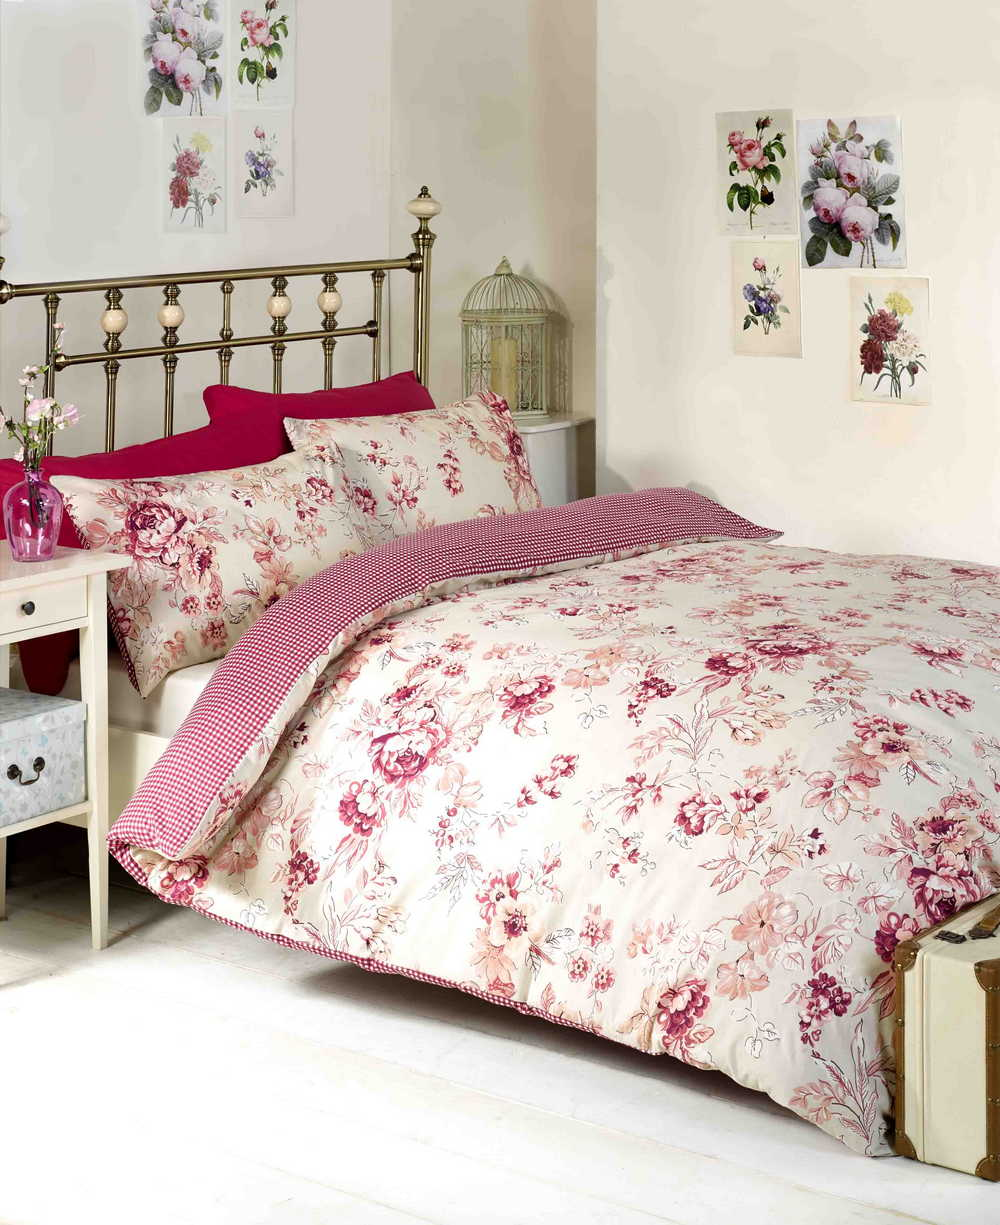 floral housse de couette double king size fleuri linge de lit shabby chic neuf ebay. Black Bedroom Furniture Sets. Home Design Ideas